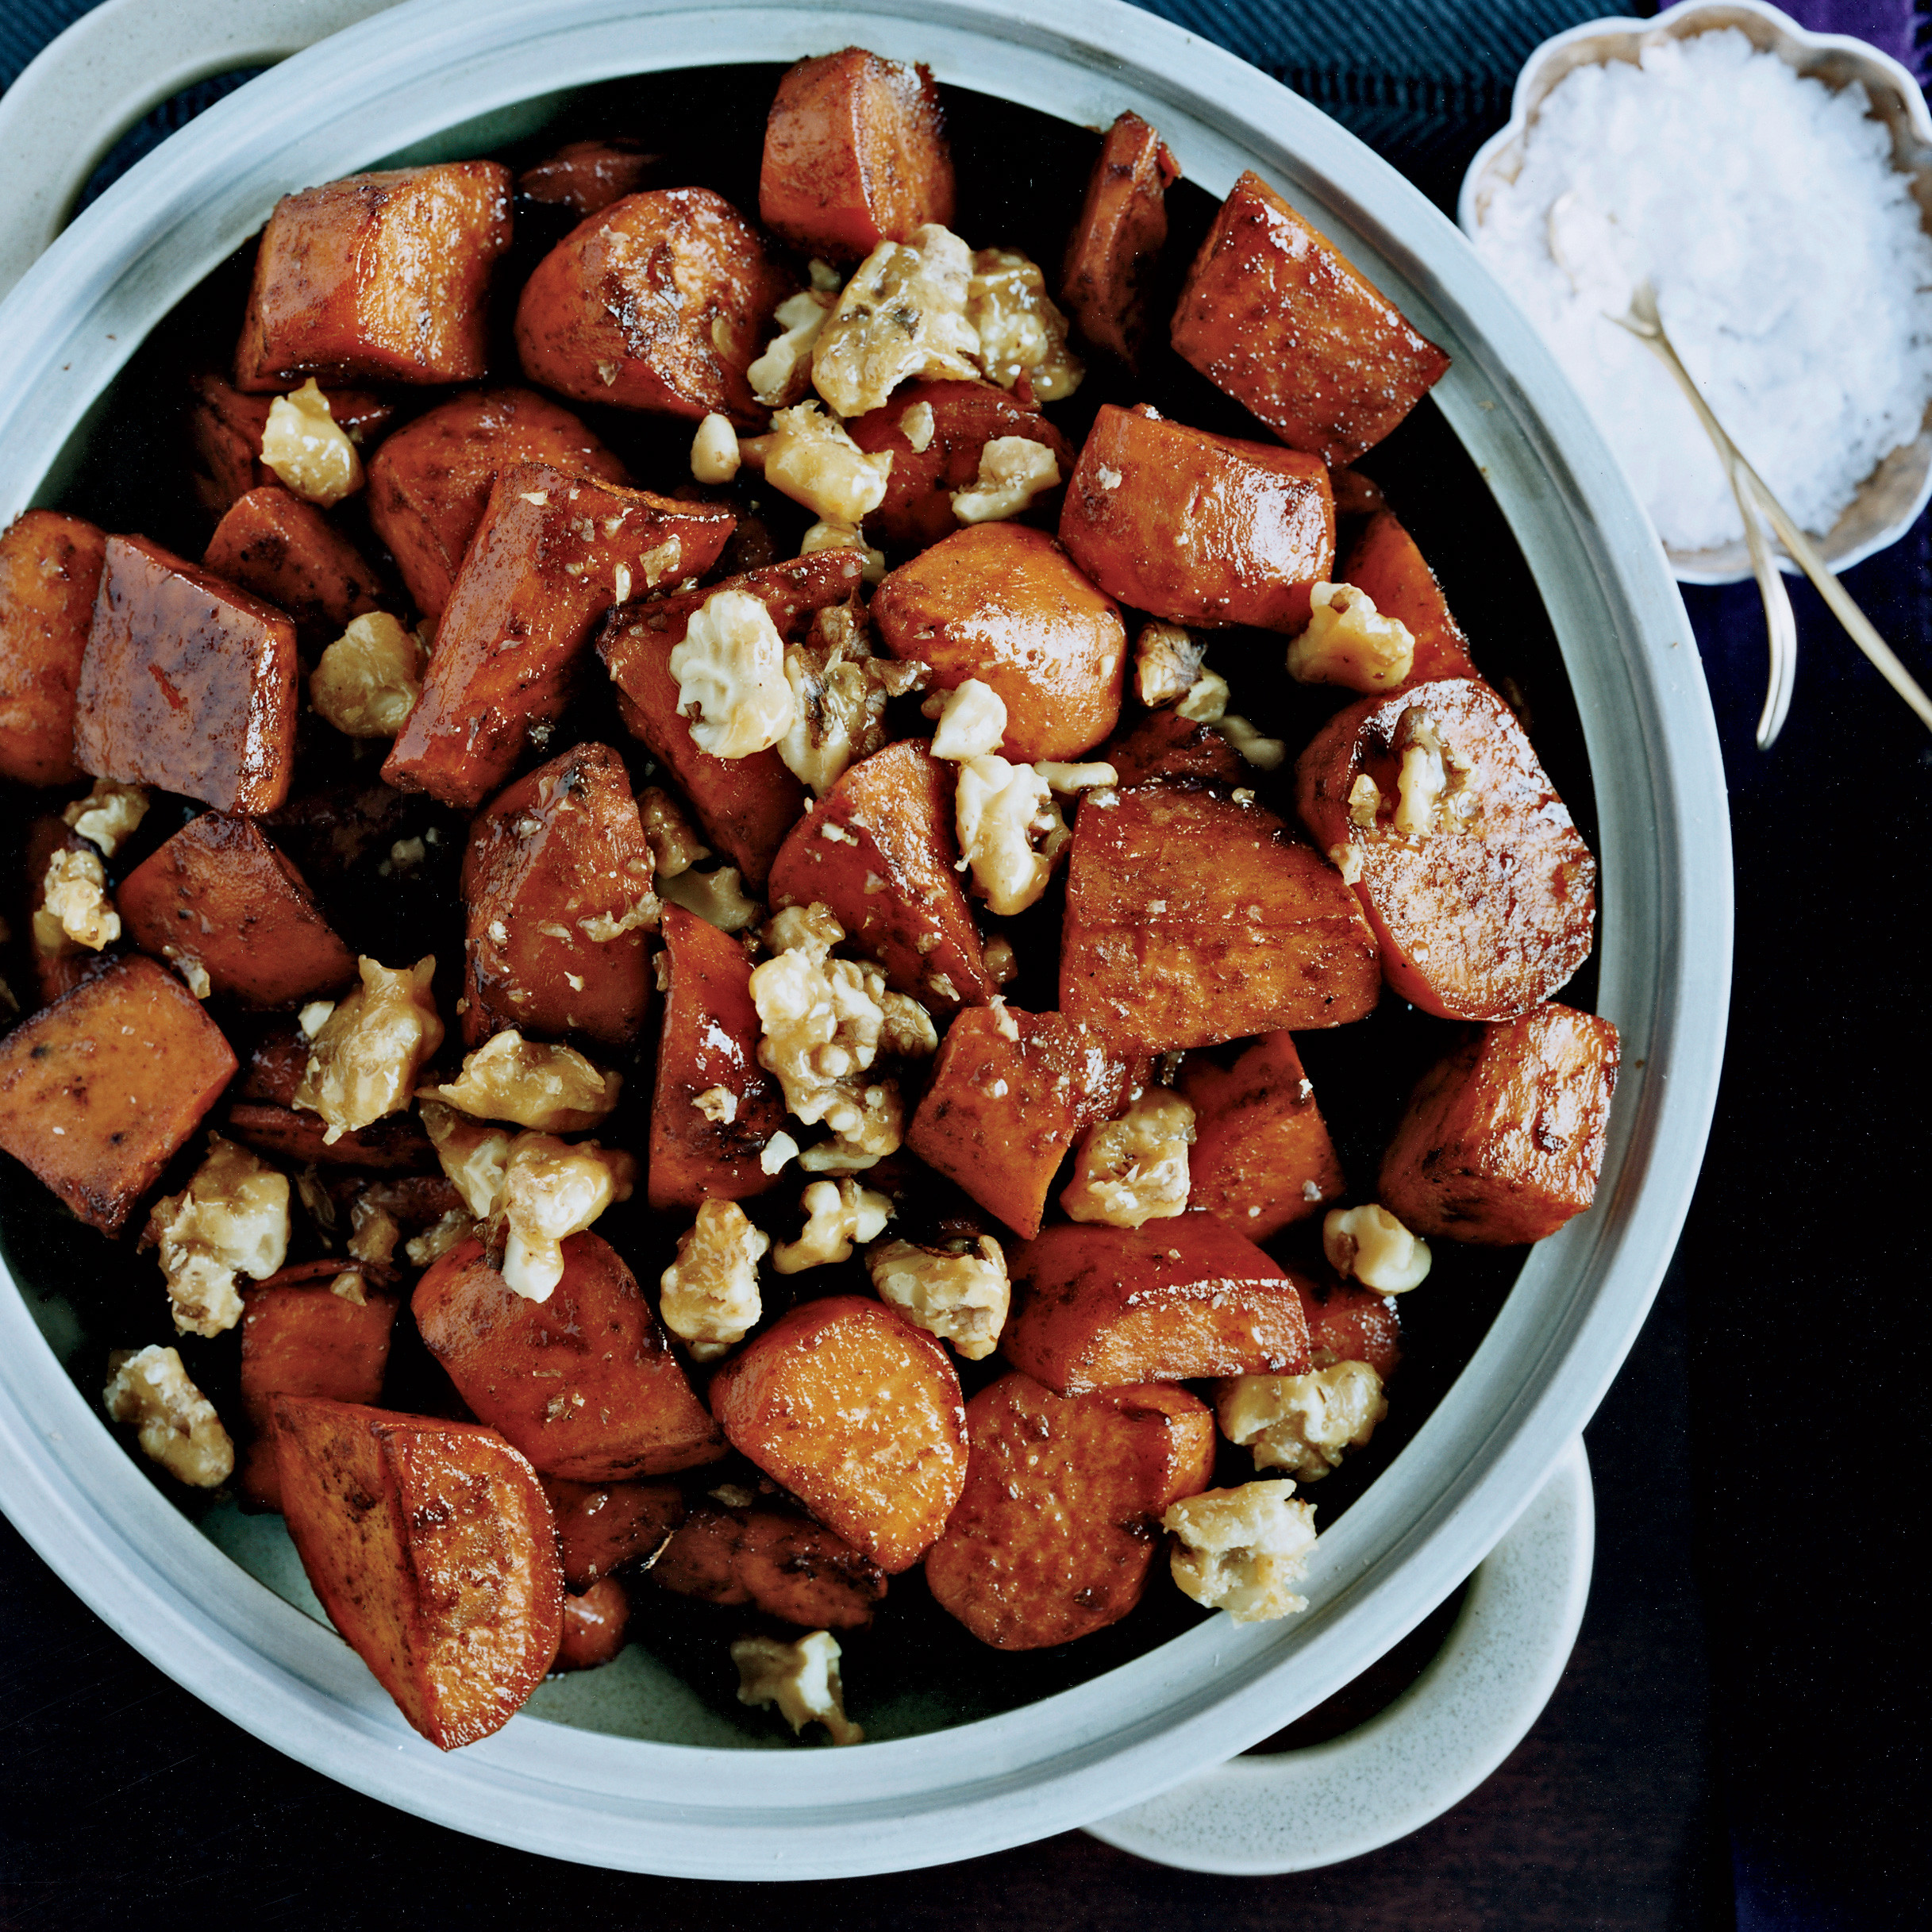 Sweet Potato Recipes For Thanksgiving  Five Spice Glazed Sweet Potatoes with Walnut Toffee Recipe